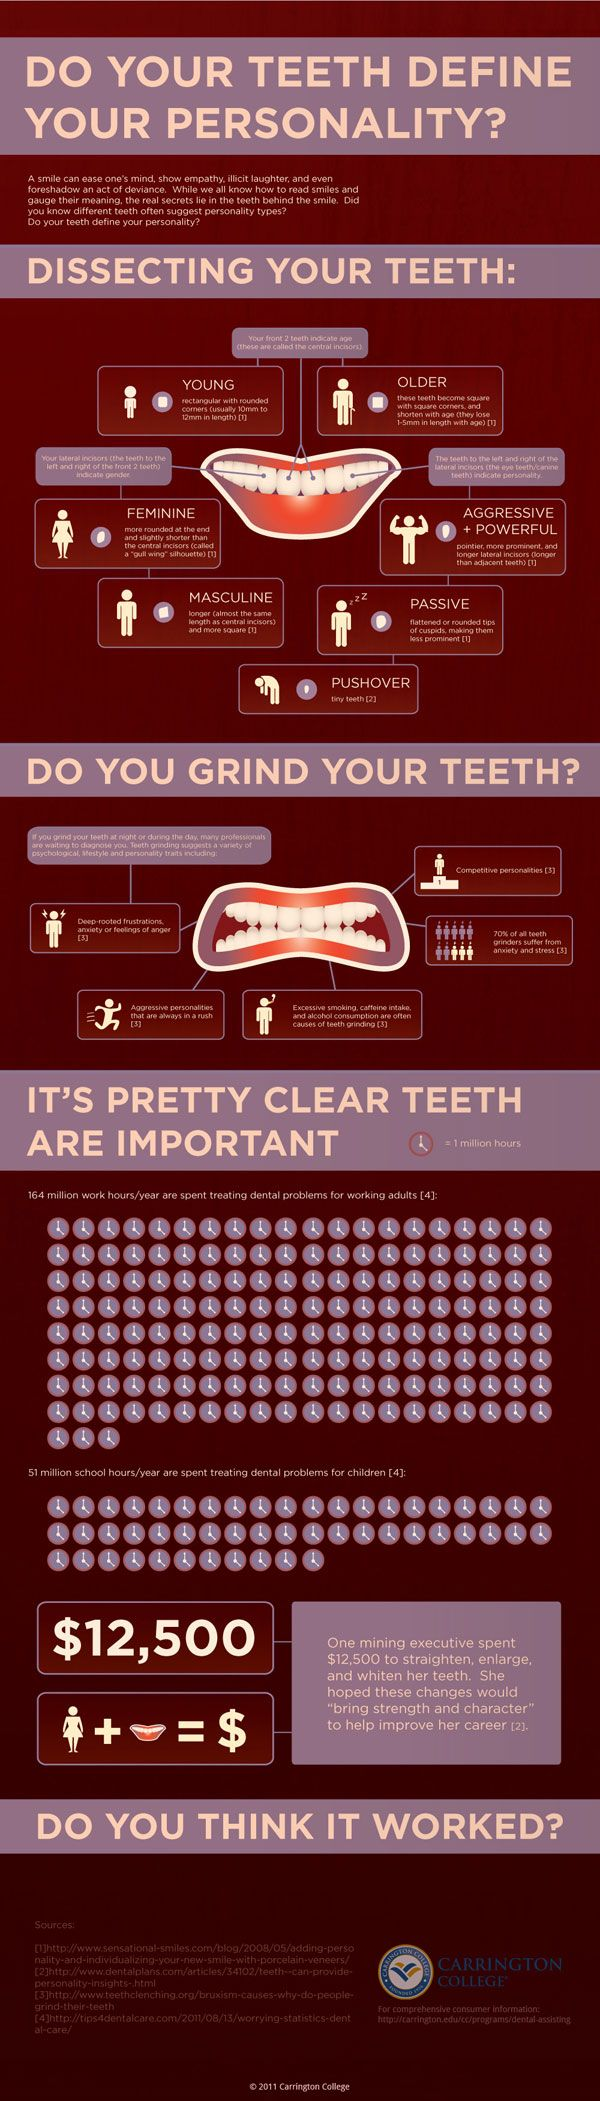 Could it affect your career dental 271